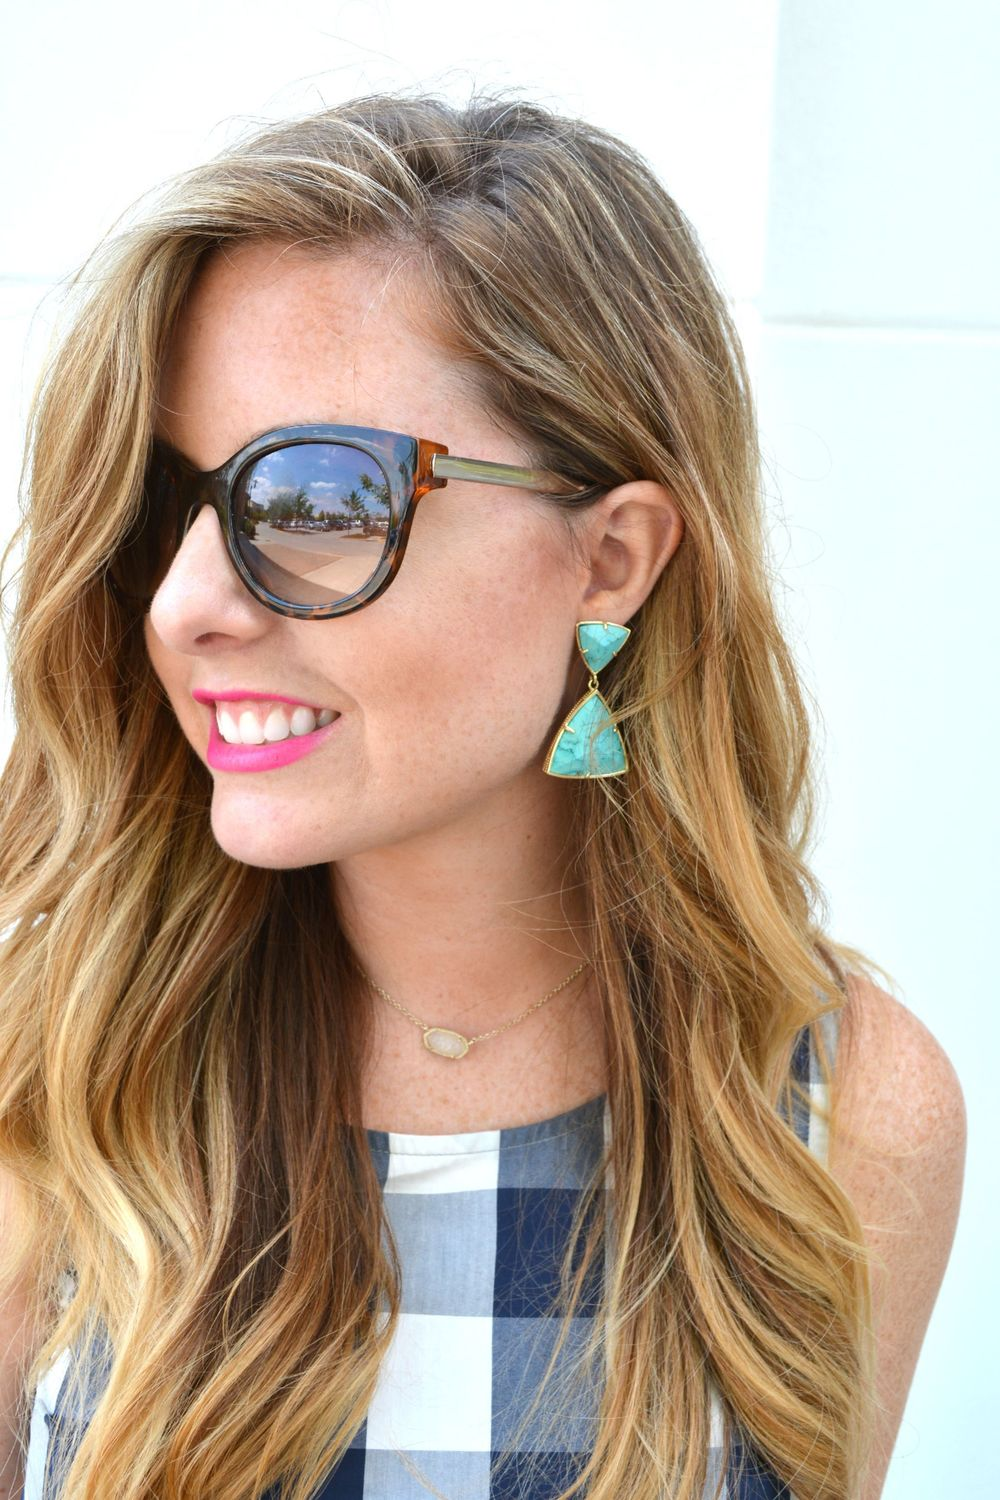 Kendra Scott turquoise earrings on Sophisticaited.com